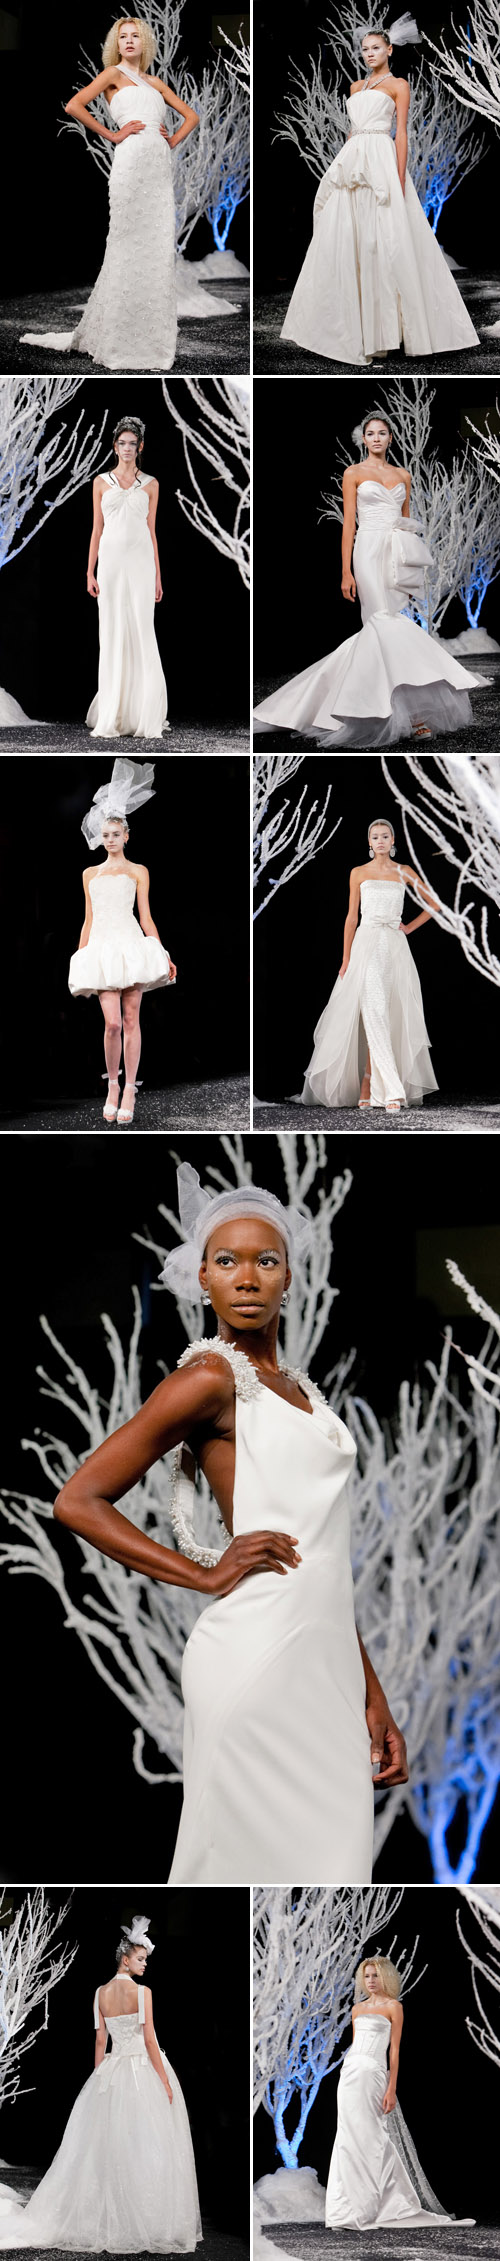 Douglas Hannant Fall 2011 wedding dress collection from NY Bridal Market, photos by John and Jospeh Photography